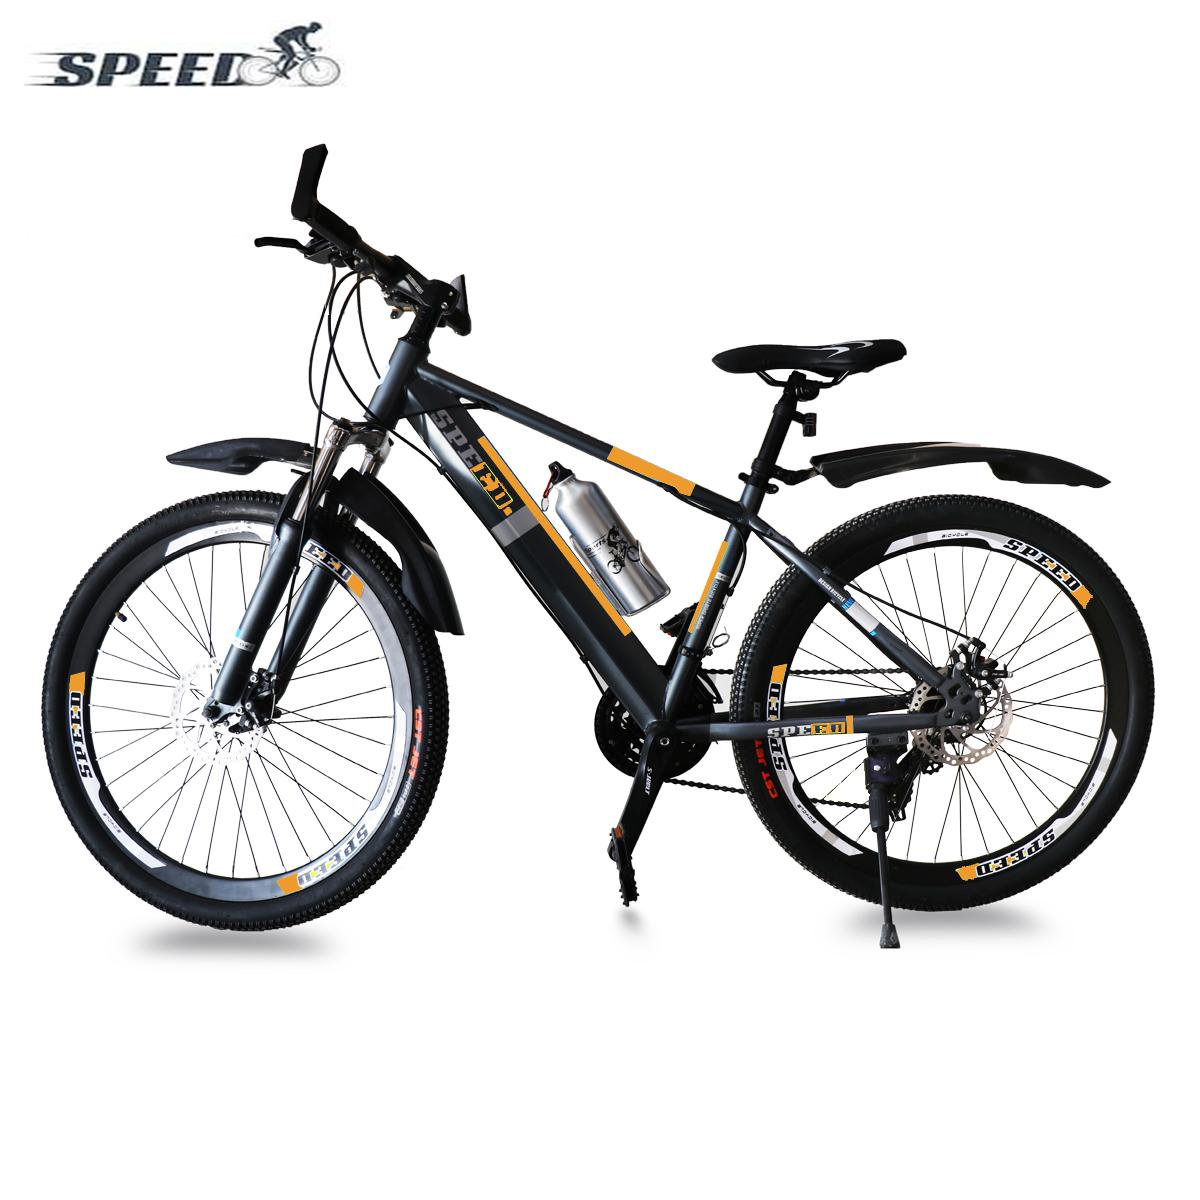 From The Ride On New Speed New 2020 Sports Bmx Multi Gear Racers Bike Cycle For Boys Orange And Black Buy Online At Best Prices In Pakistan Daraz Pk